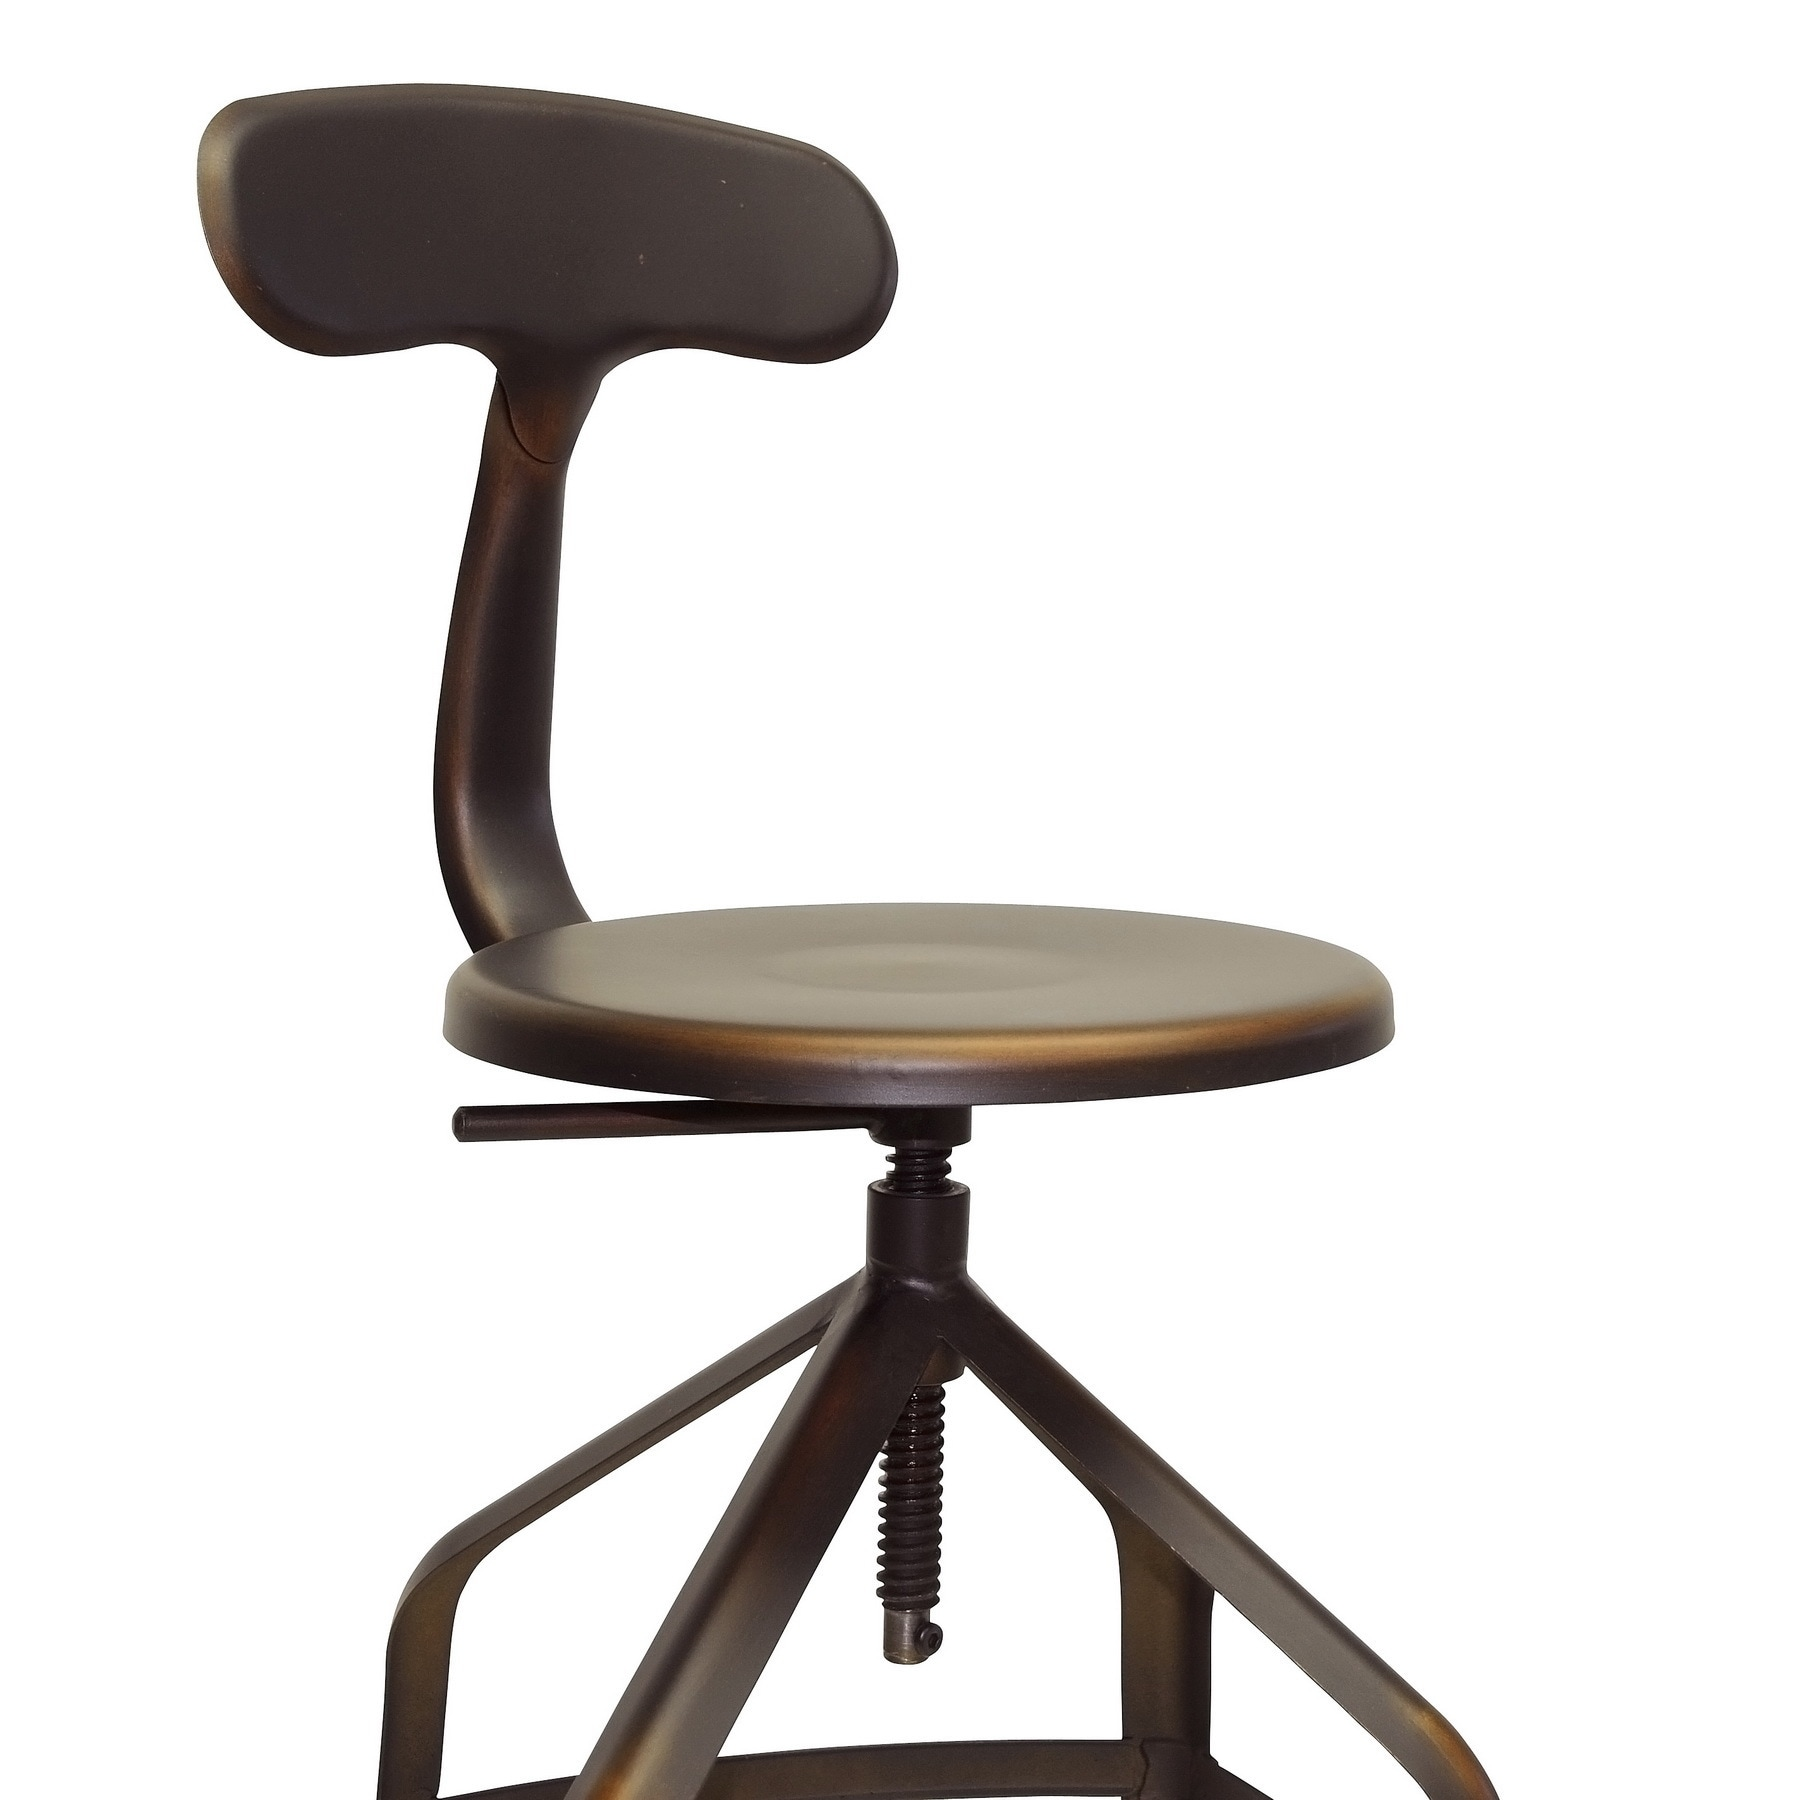 loft product stool shipping free garden wright industrial bar today barstool carbon home emery